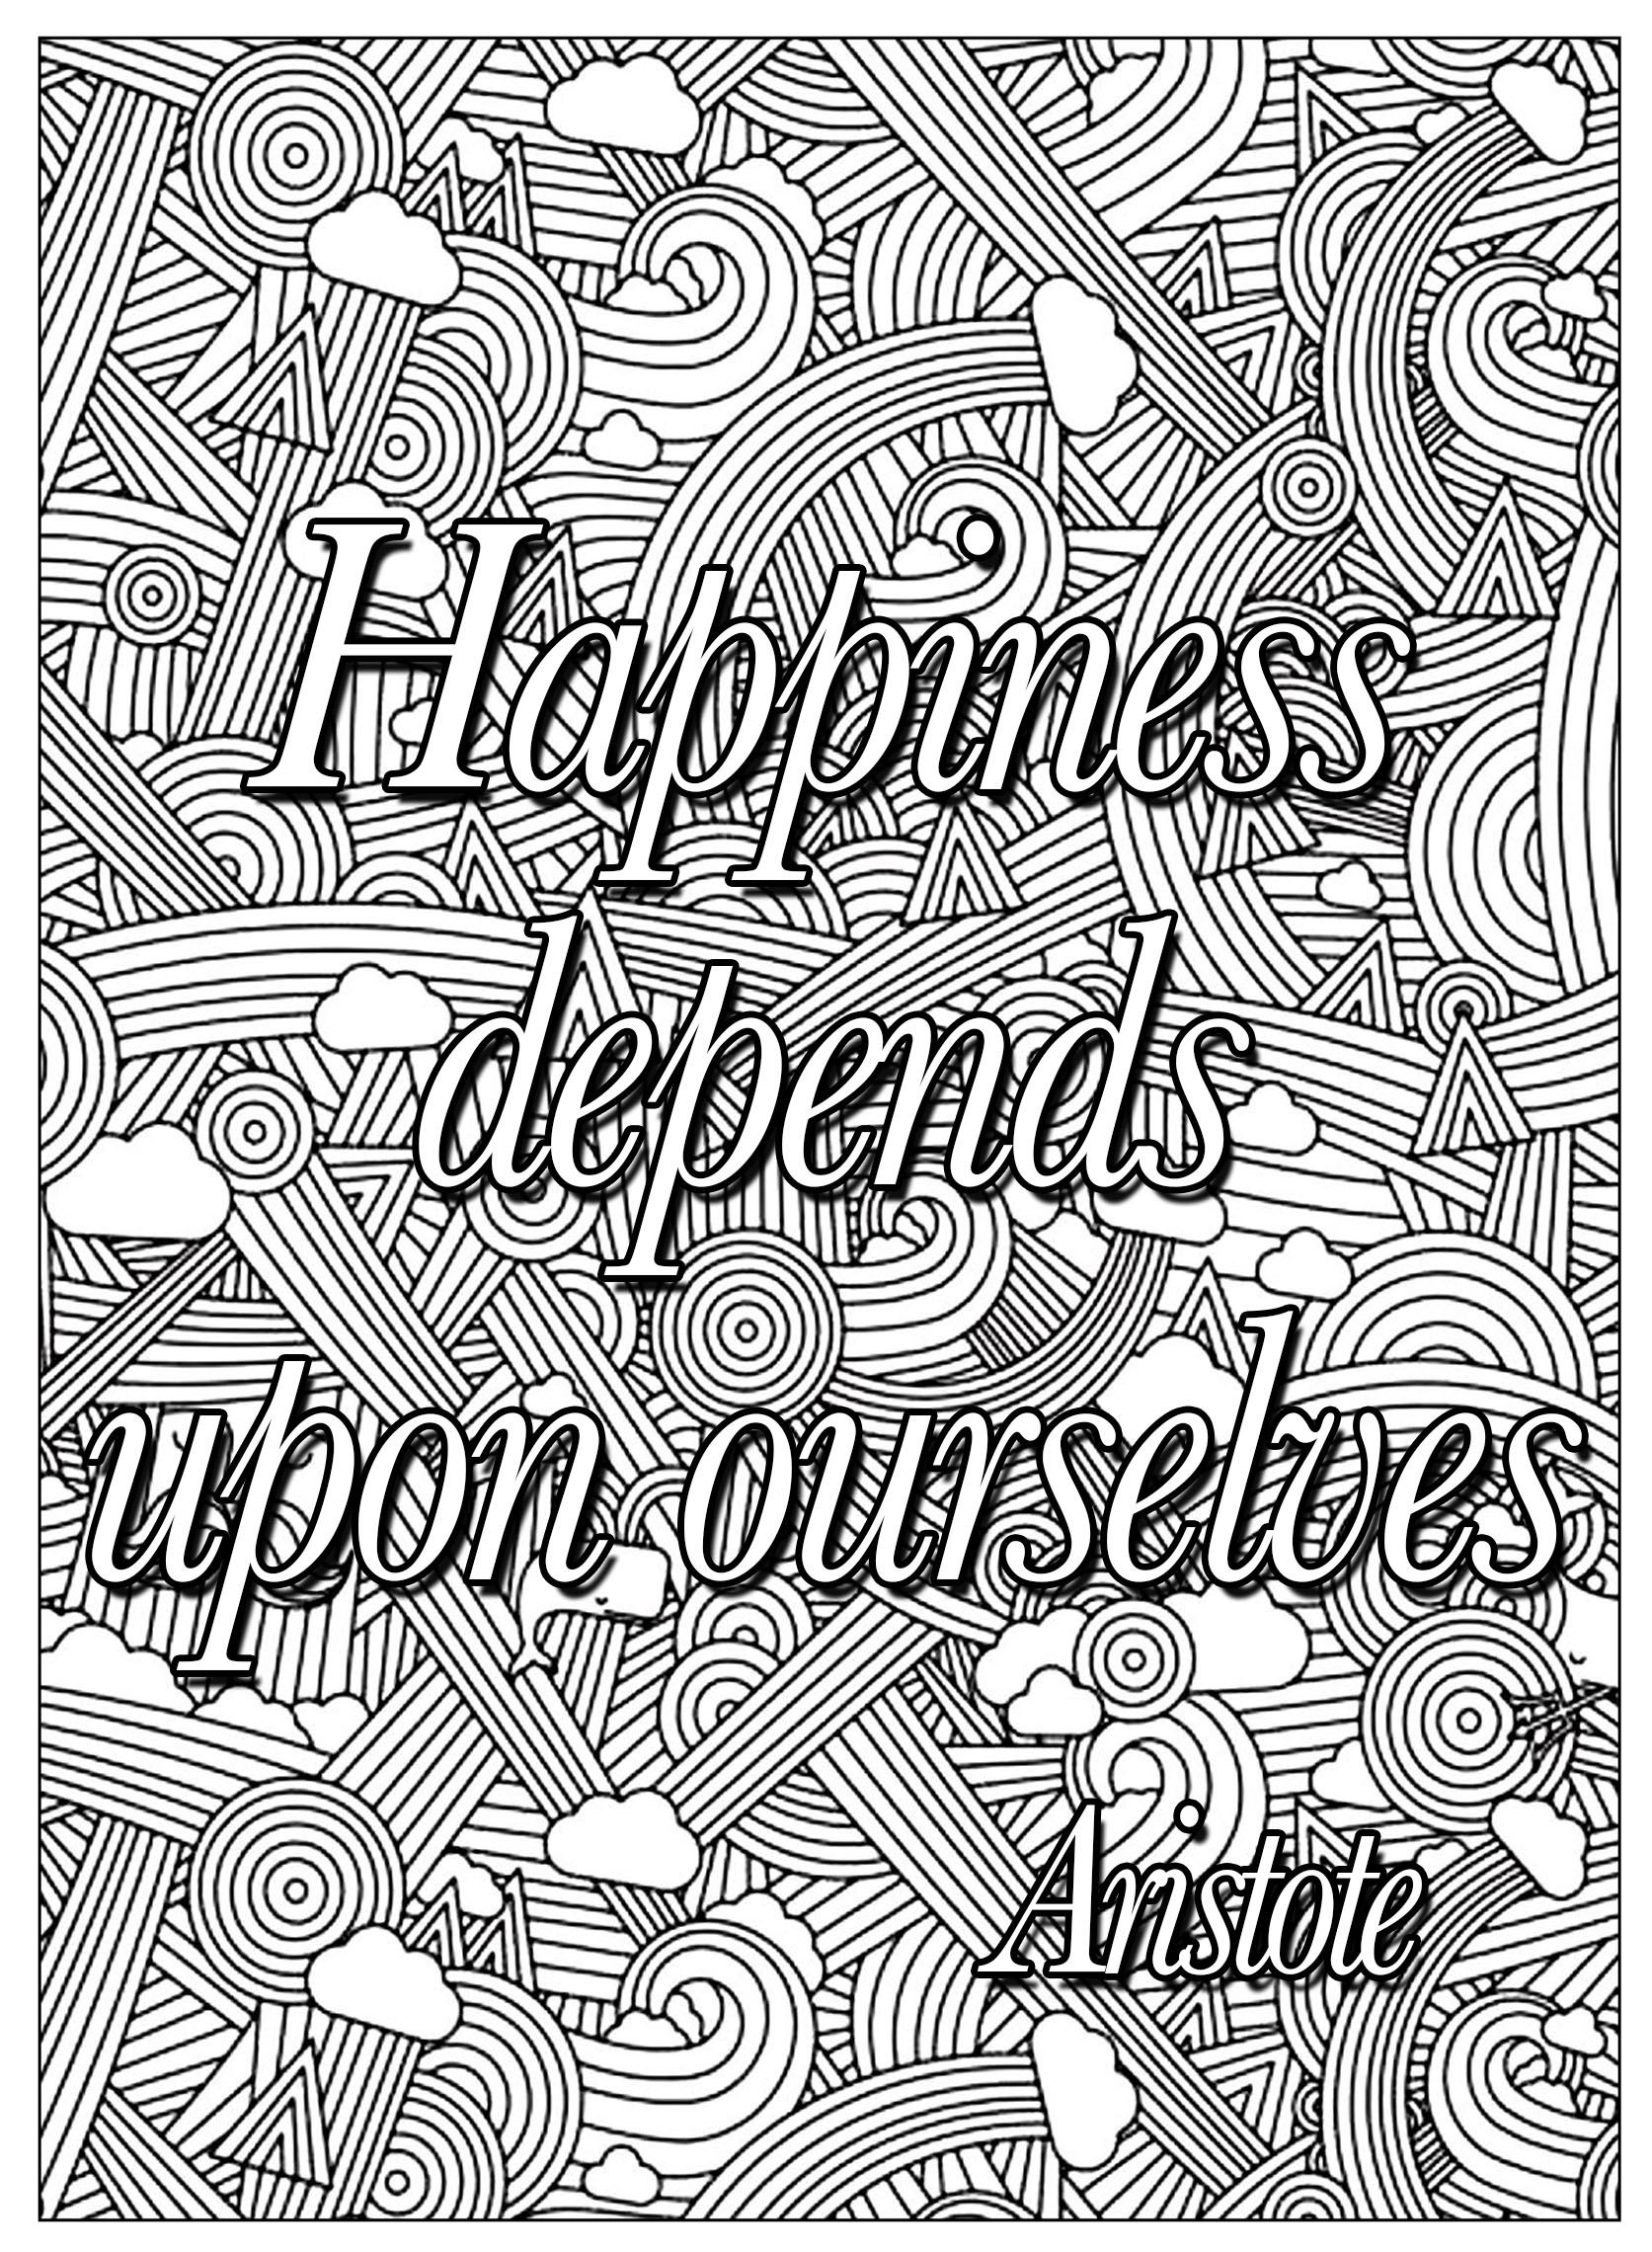 Happiness depends upon ourselves quotes adult coloring pages